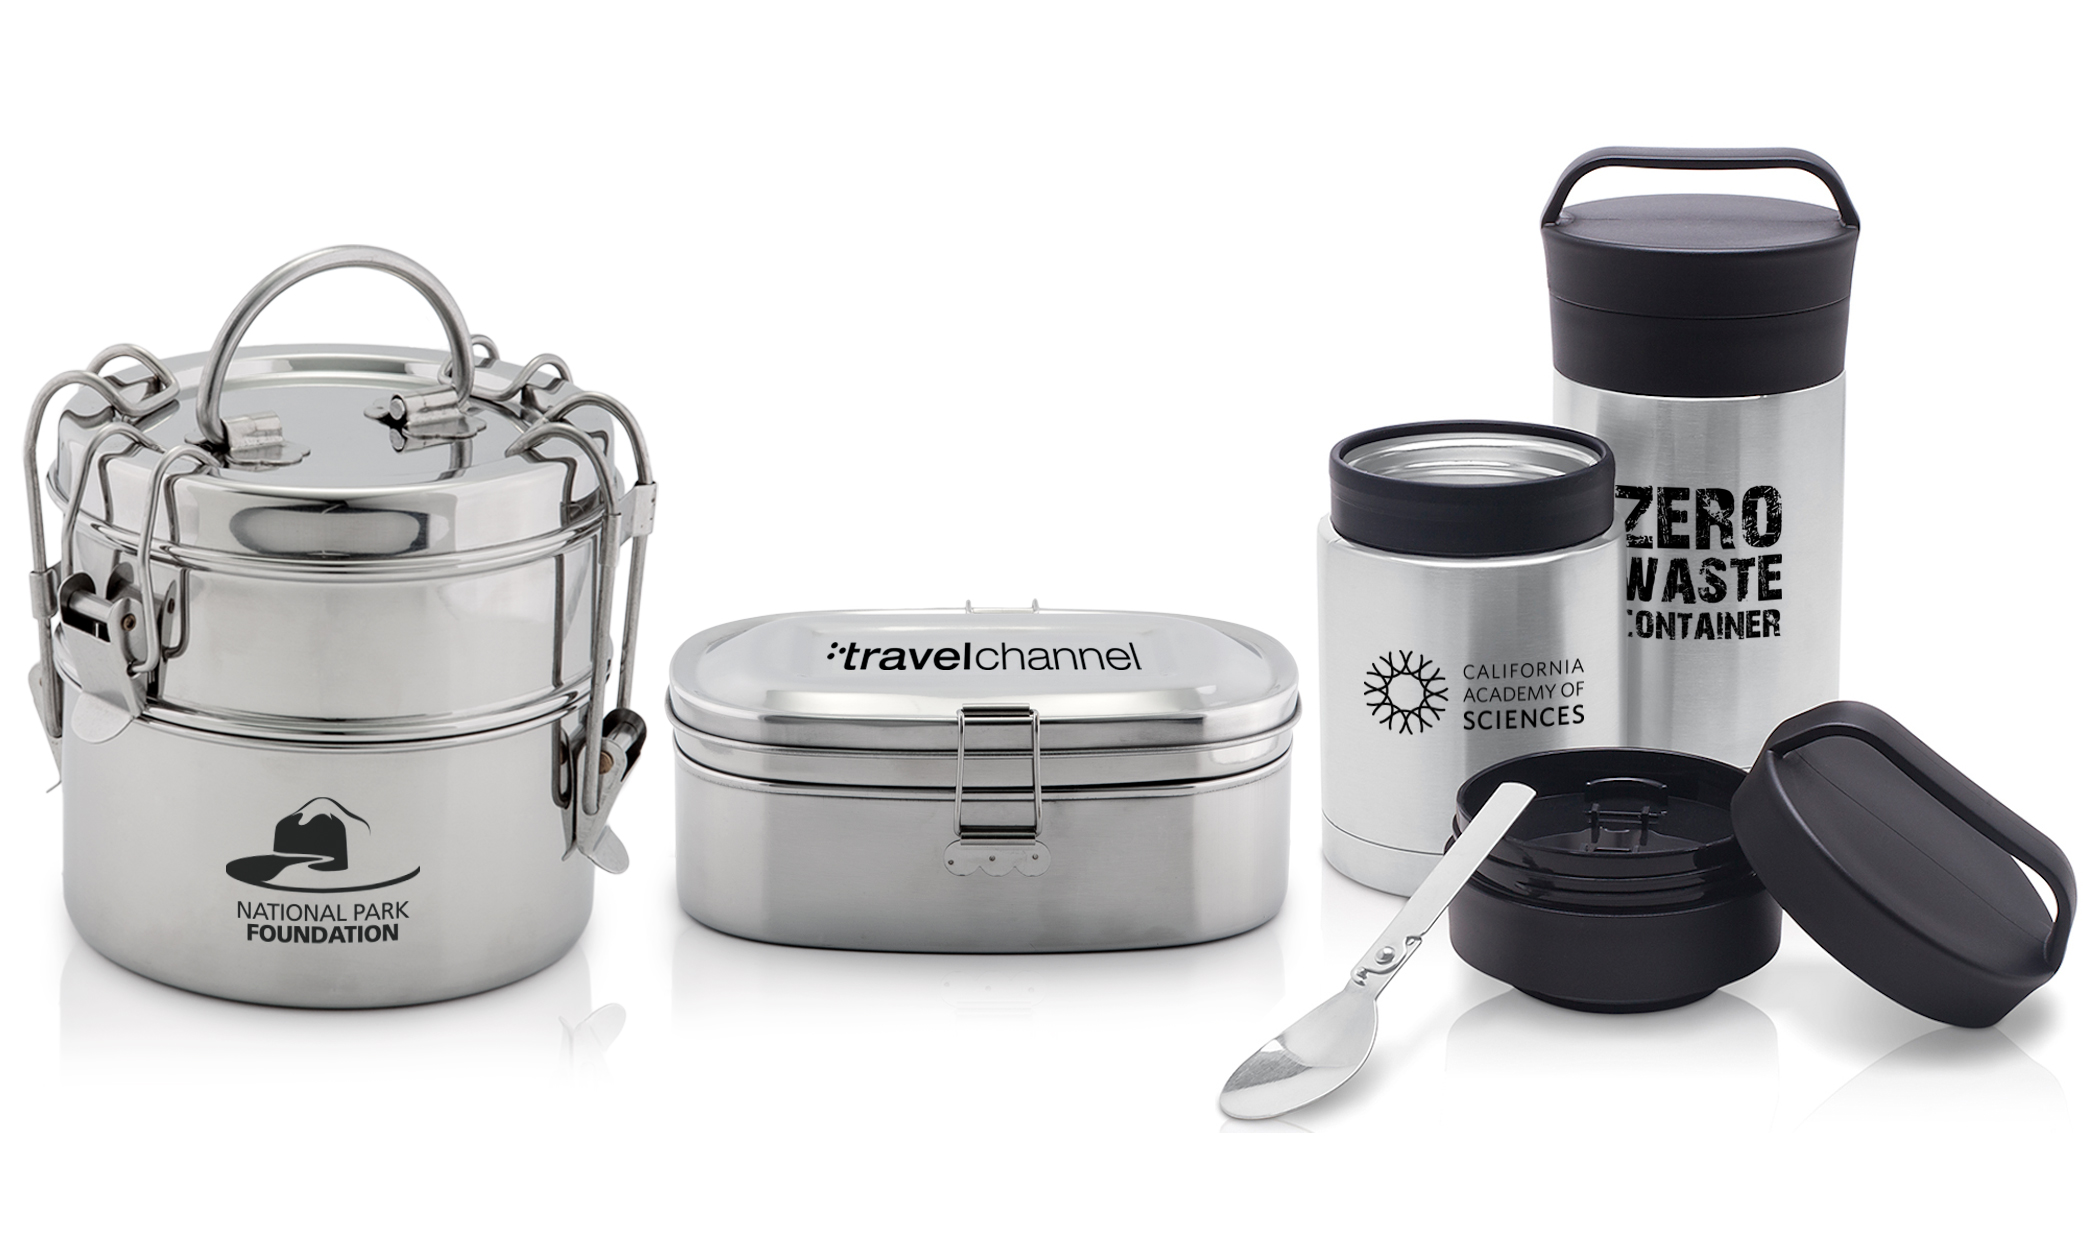 stainless steel zero-waste foodware and containers